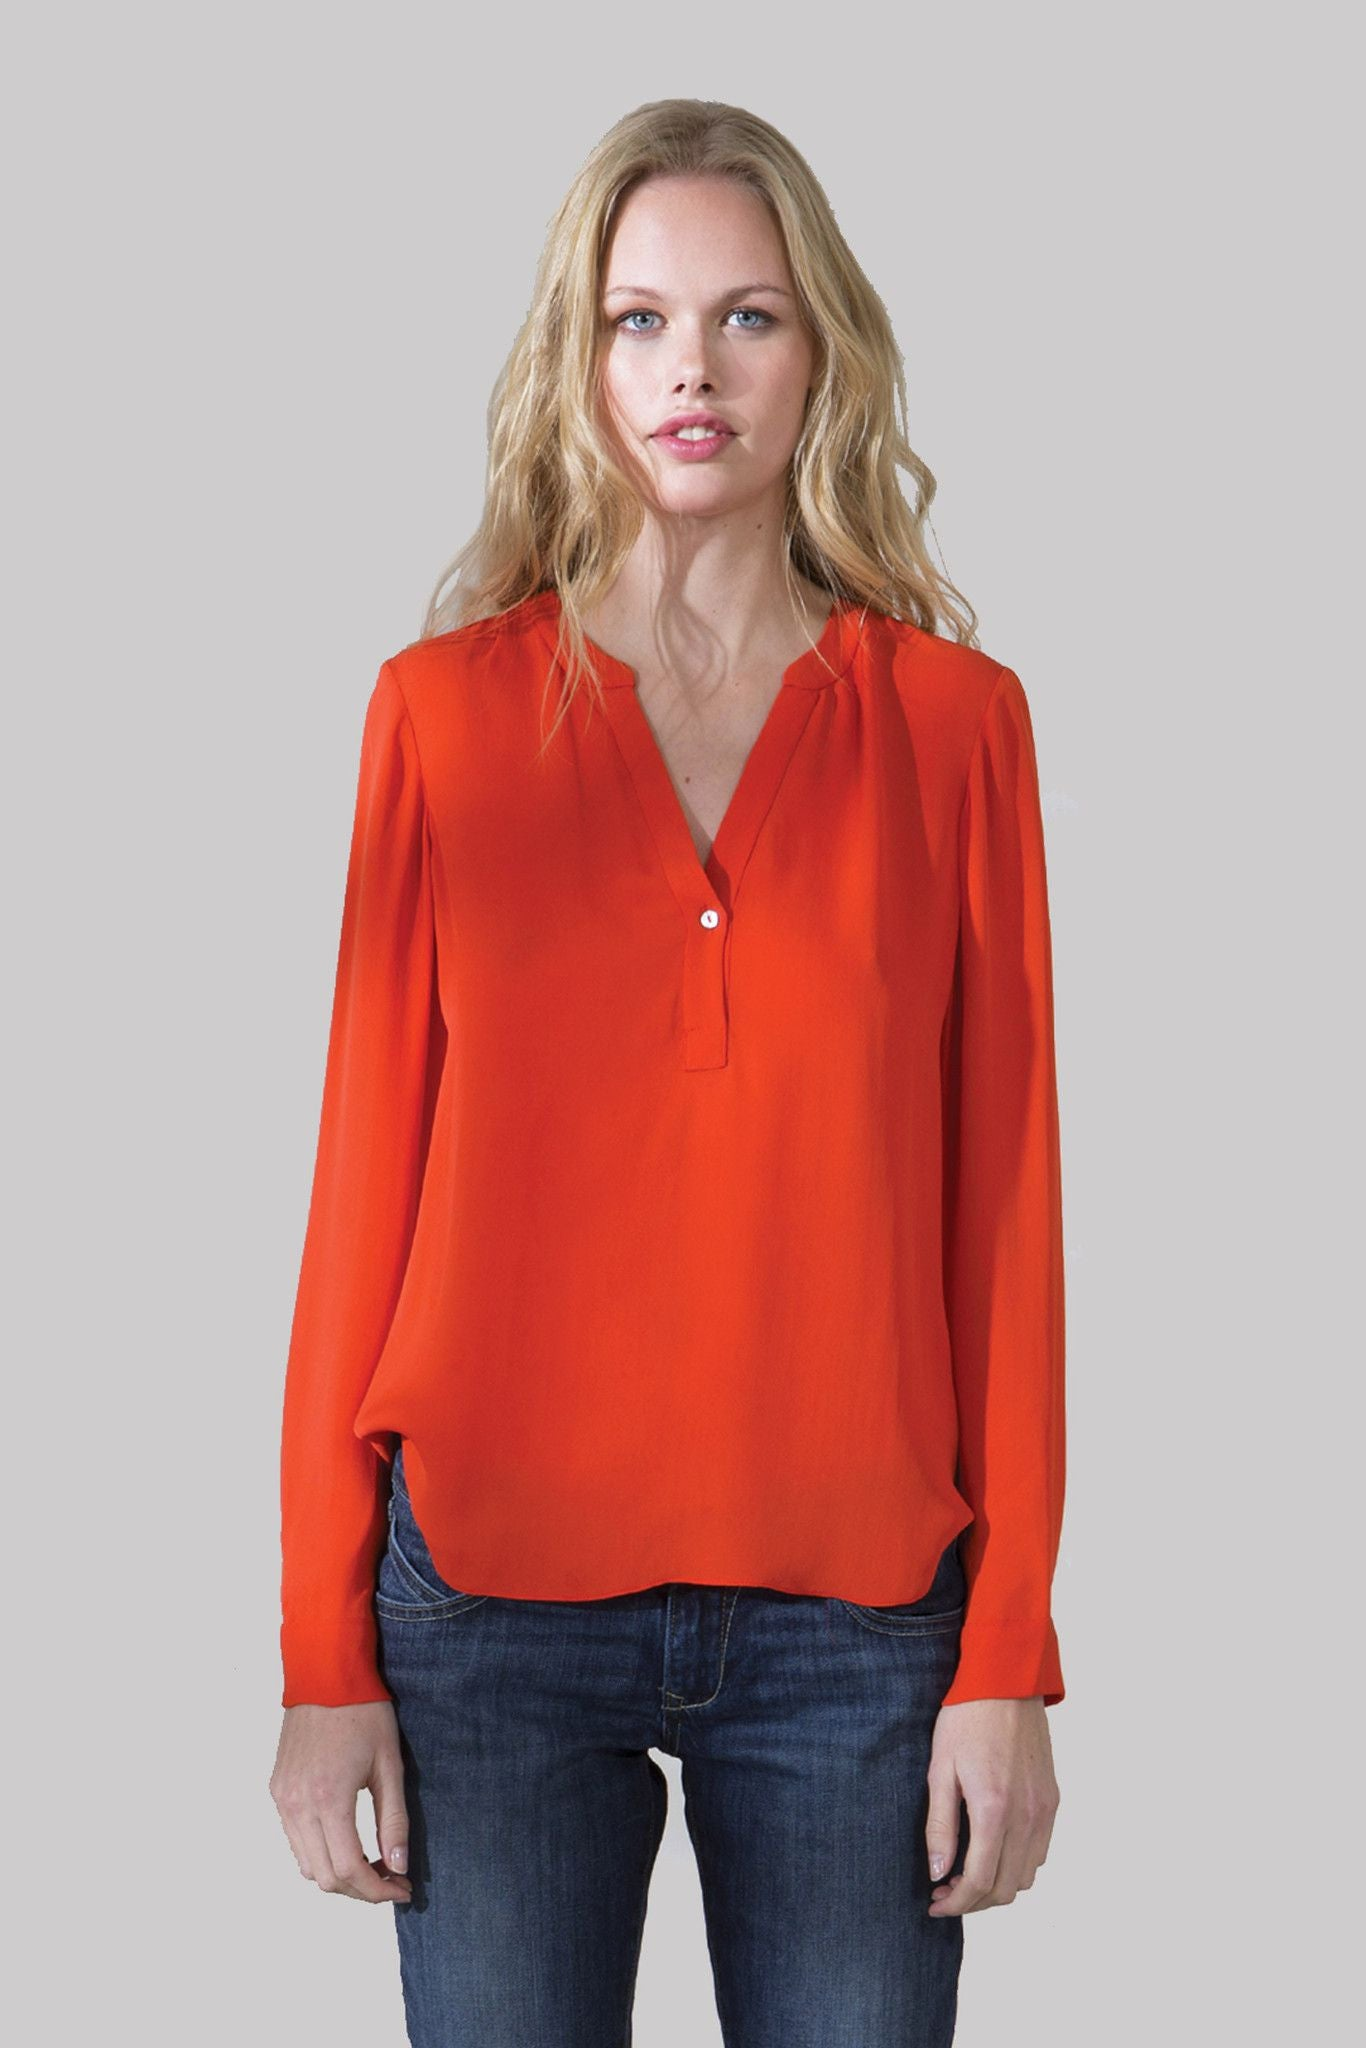 T130 LONG SLEEVE DYED TOP IN CDC FLAME